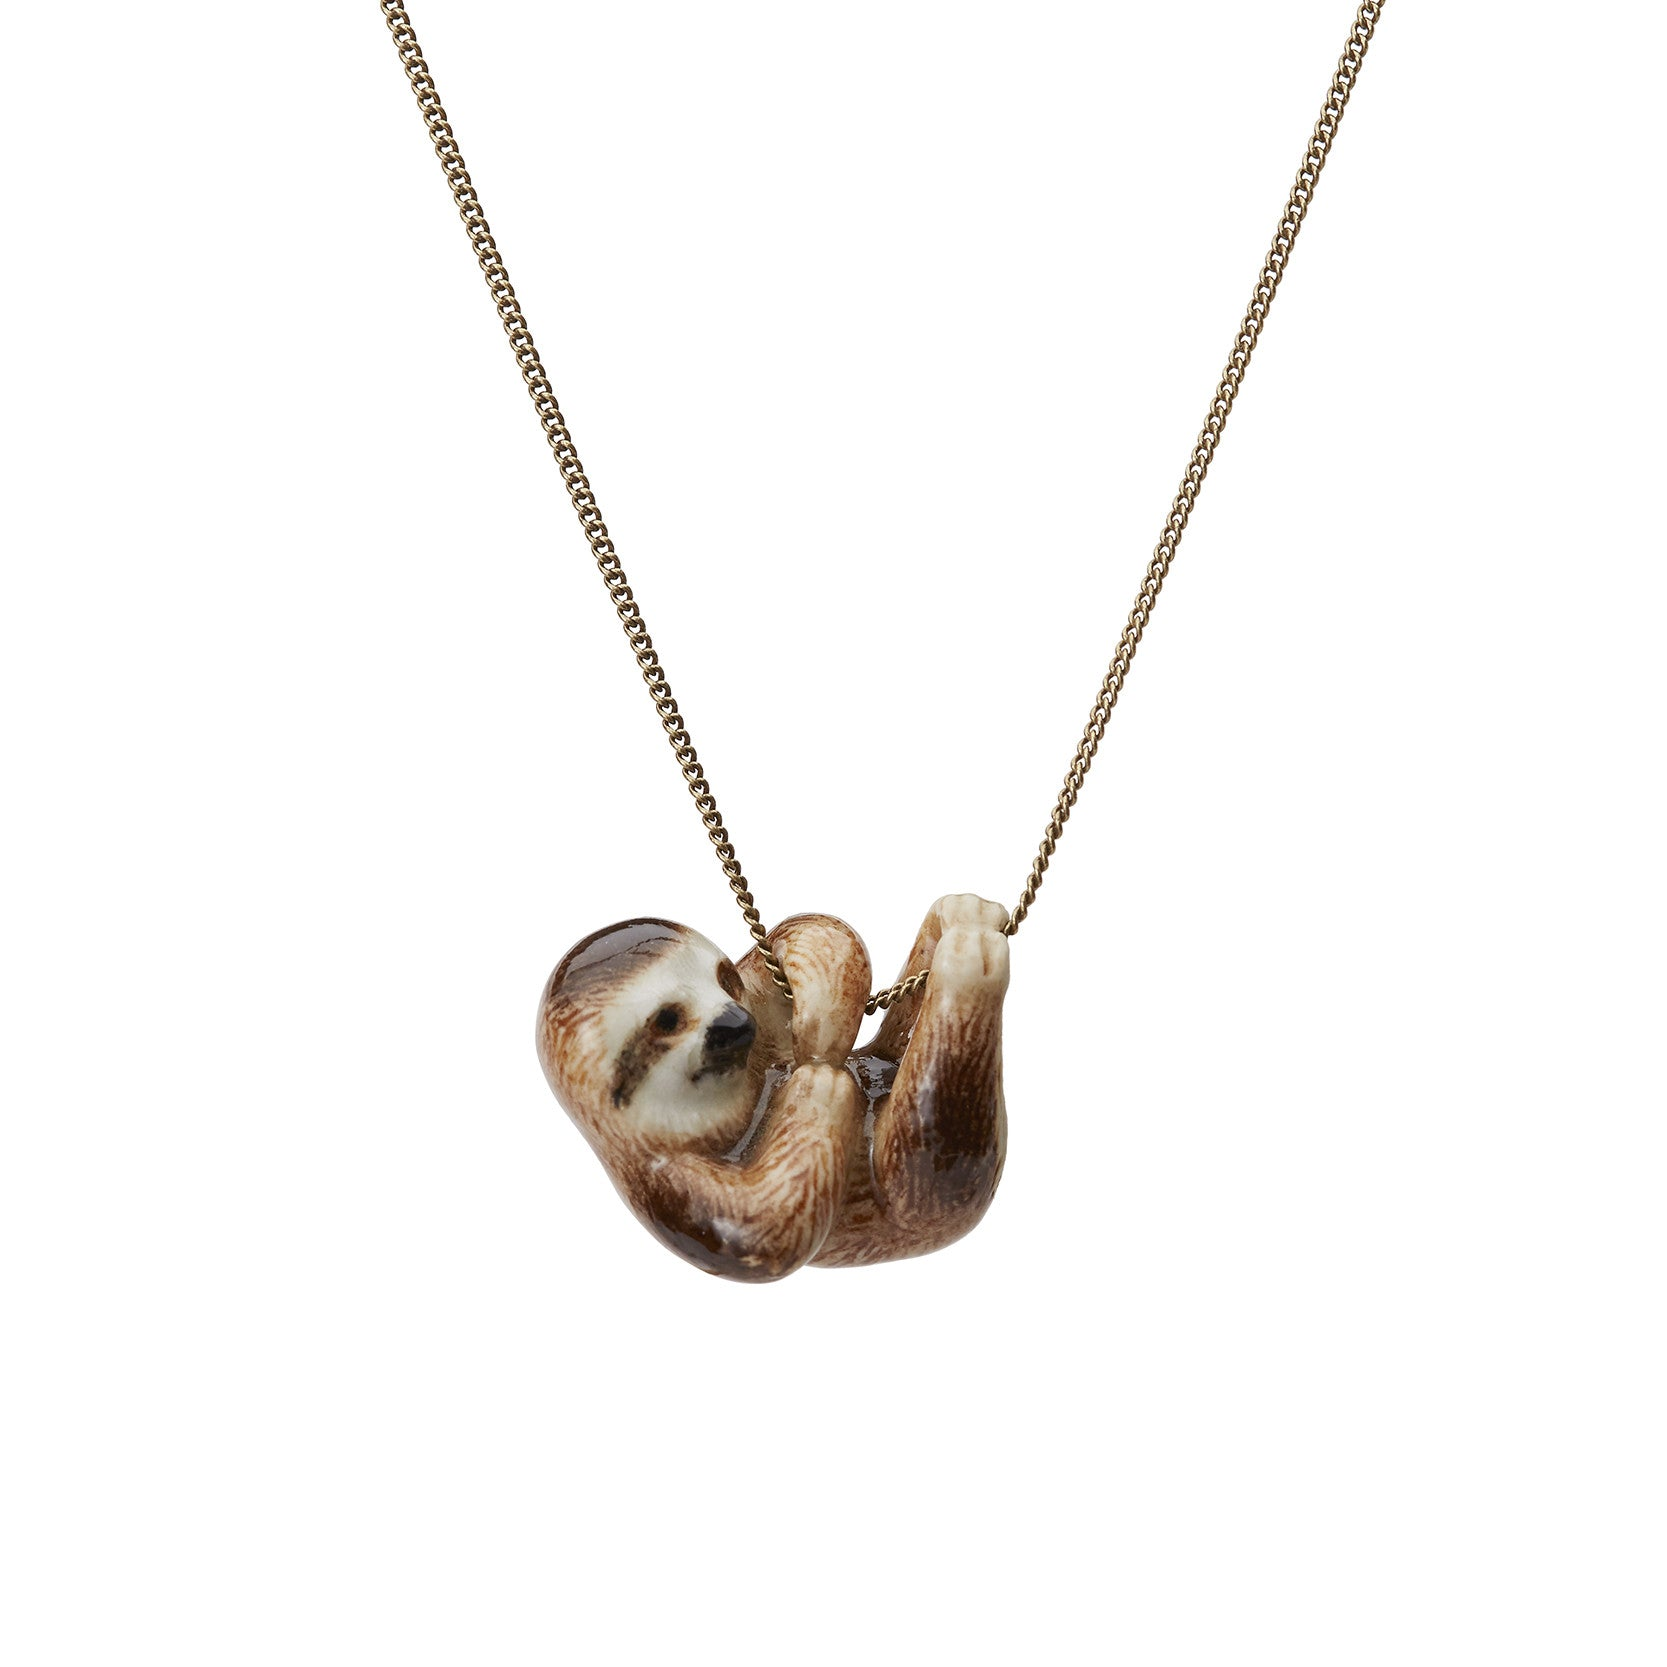 cc toco d pink save silver capture pendant co sloth minimalist a necklace the golden sloths product